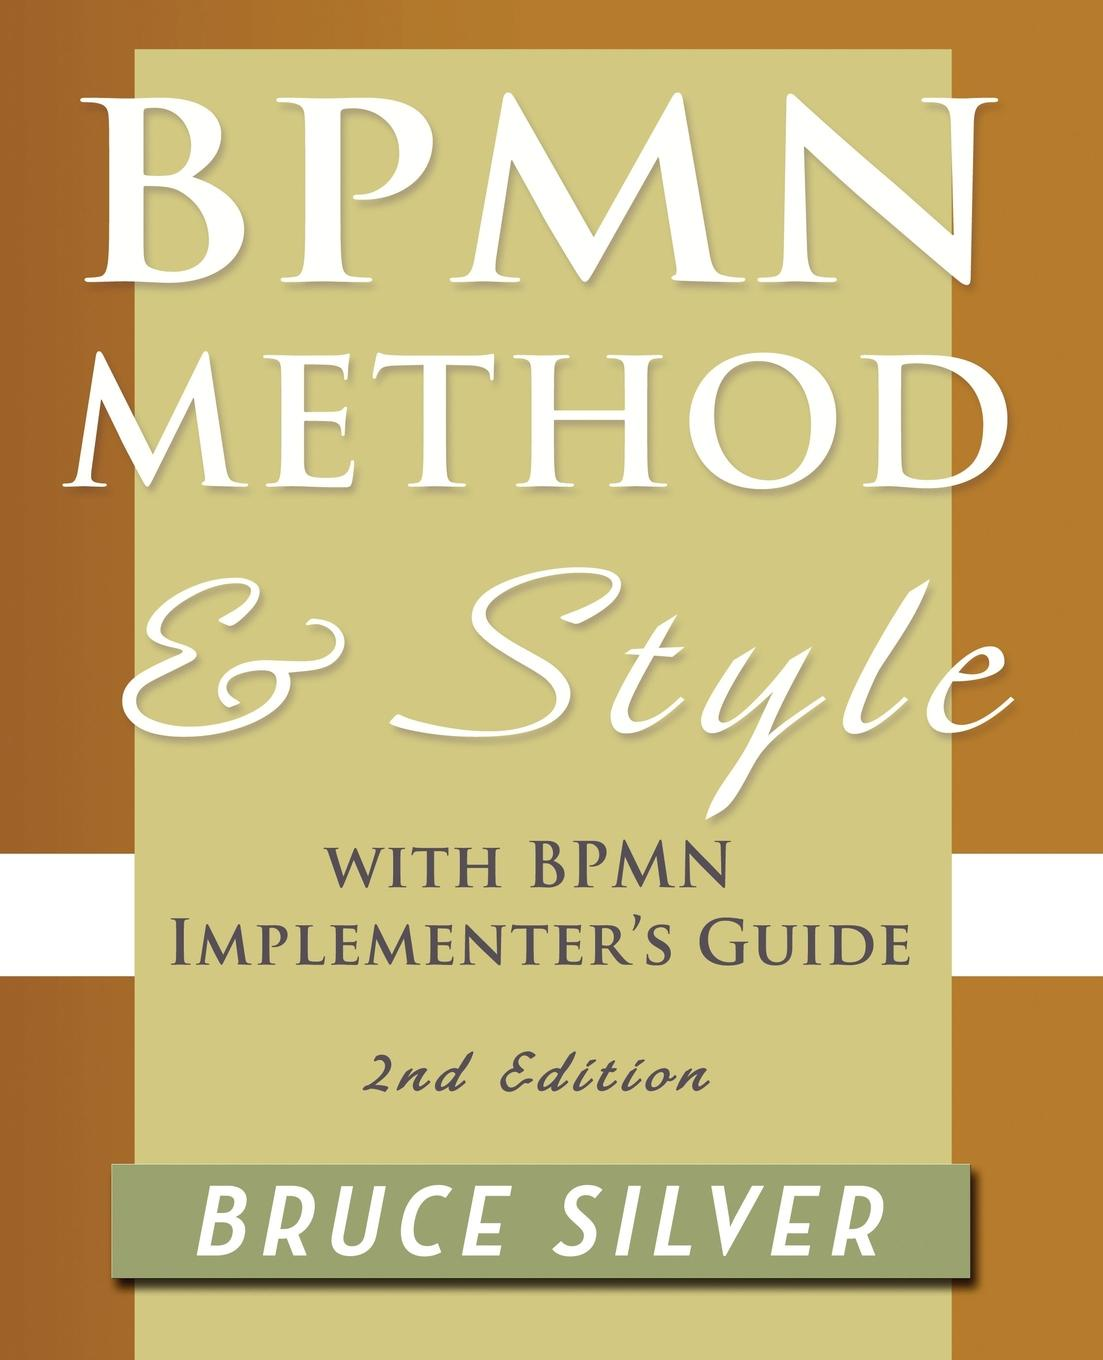 Bruce Silver Bpmn Method and Style, 2nd Edition, with Implementers Guide. A Structured Approach for Business Process Modeling Implementation Using 2